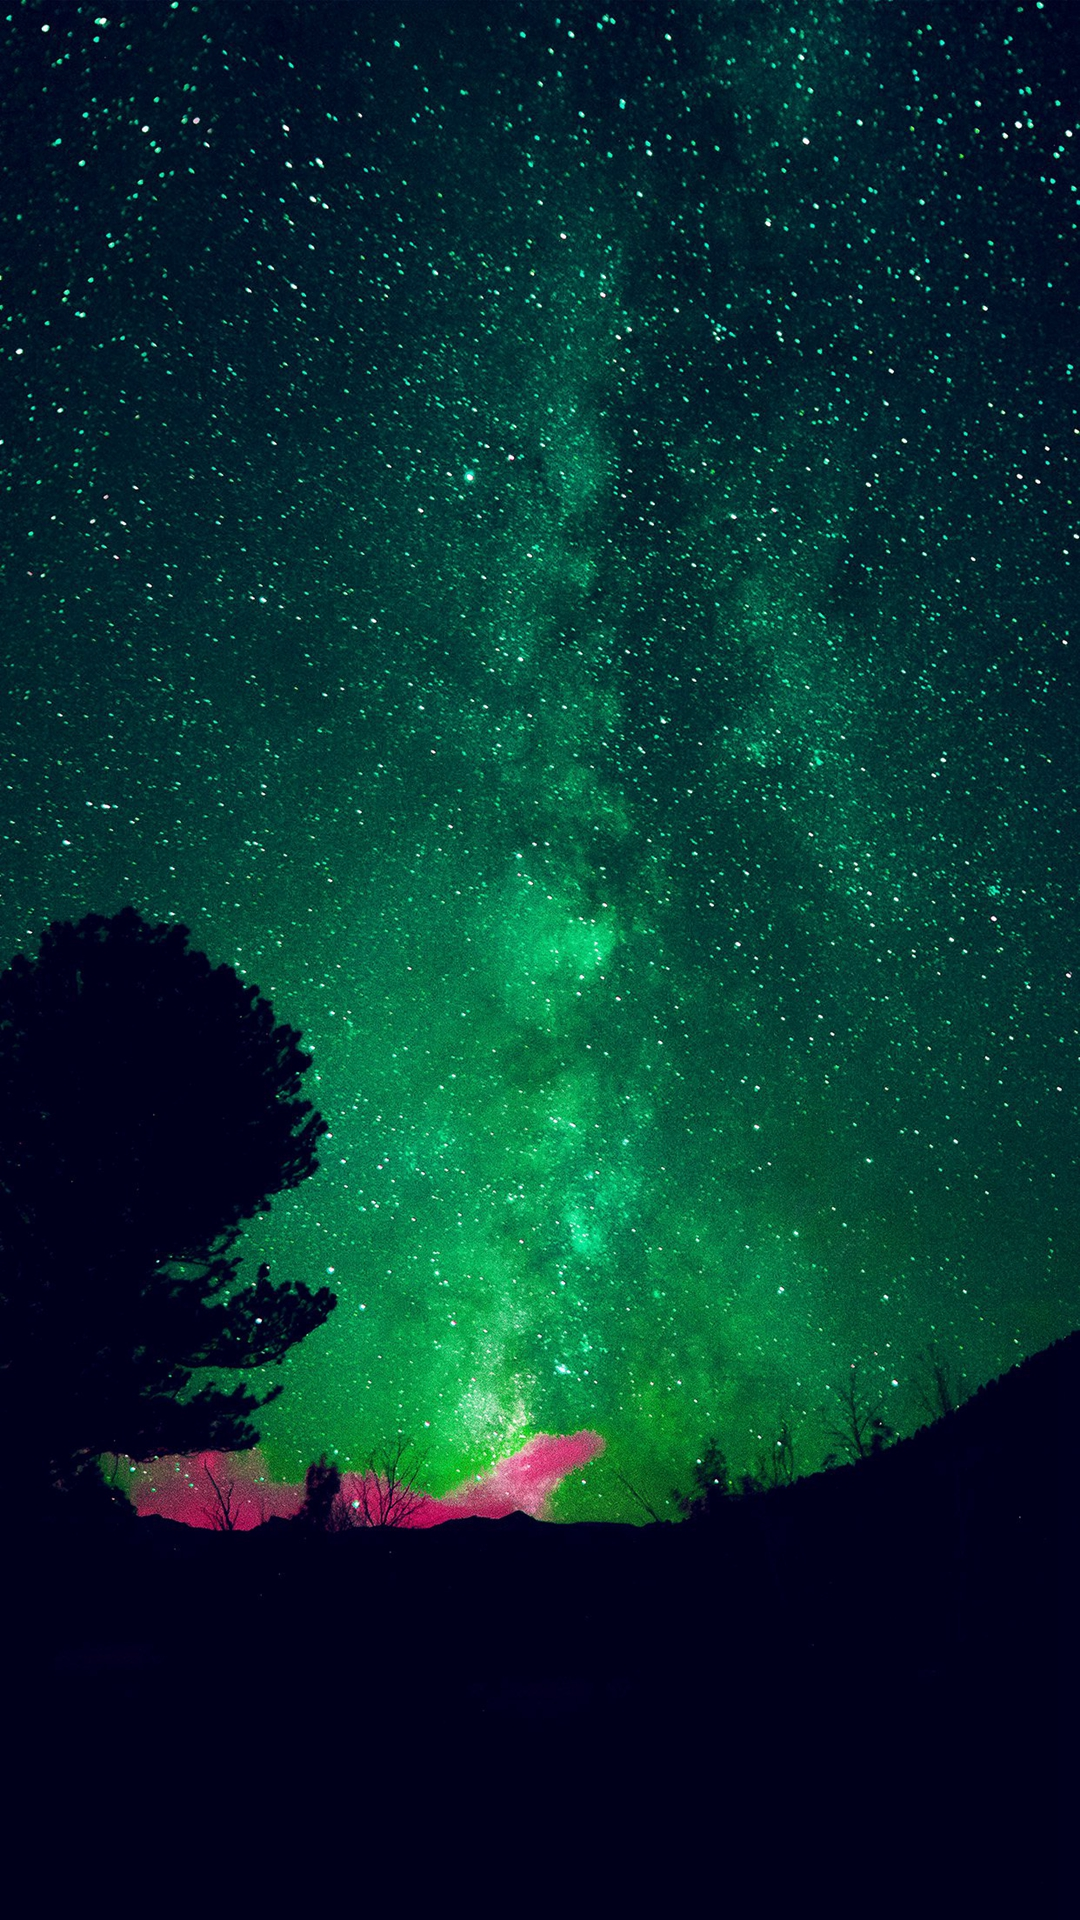 Aurora-Night-Sky-Star-Space-Nature-Green-iPhone-wallpaper-wp3003372